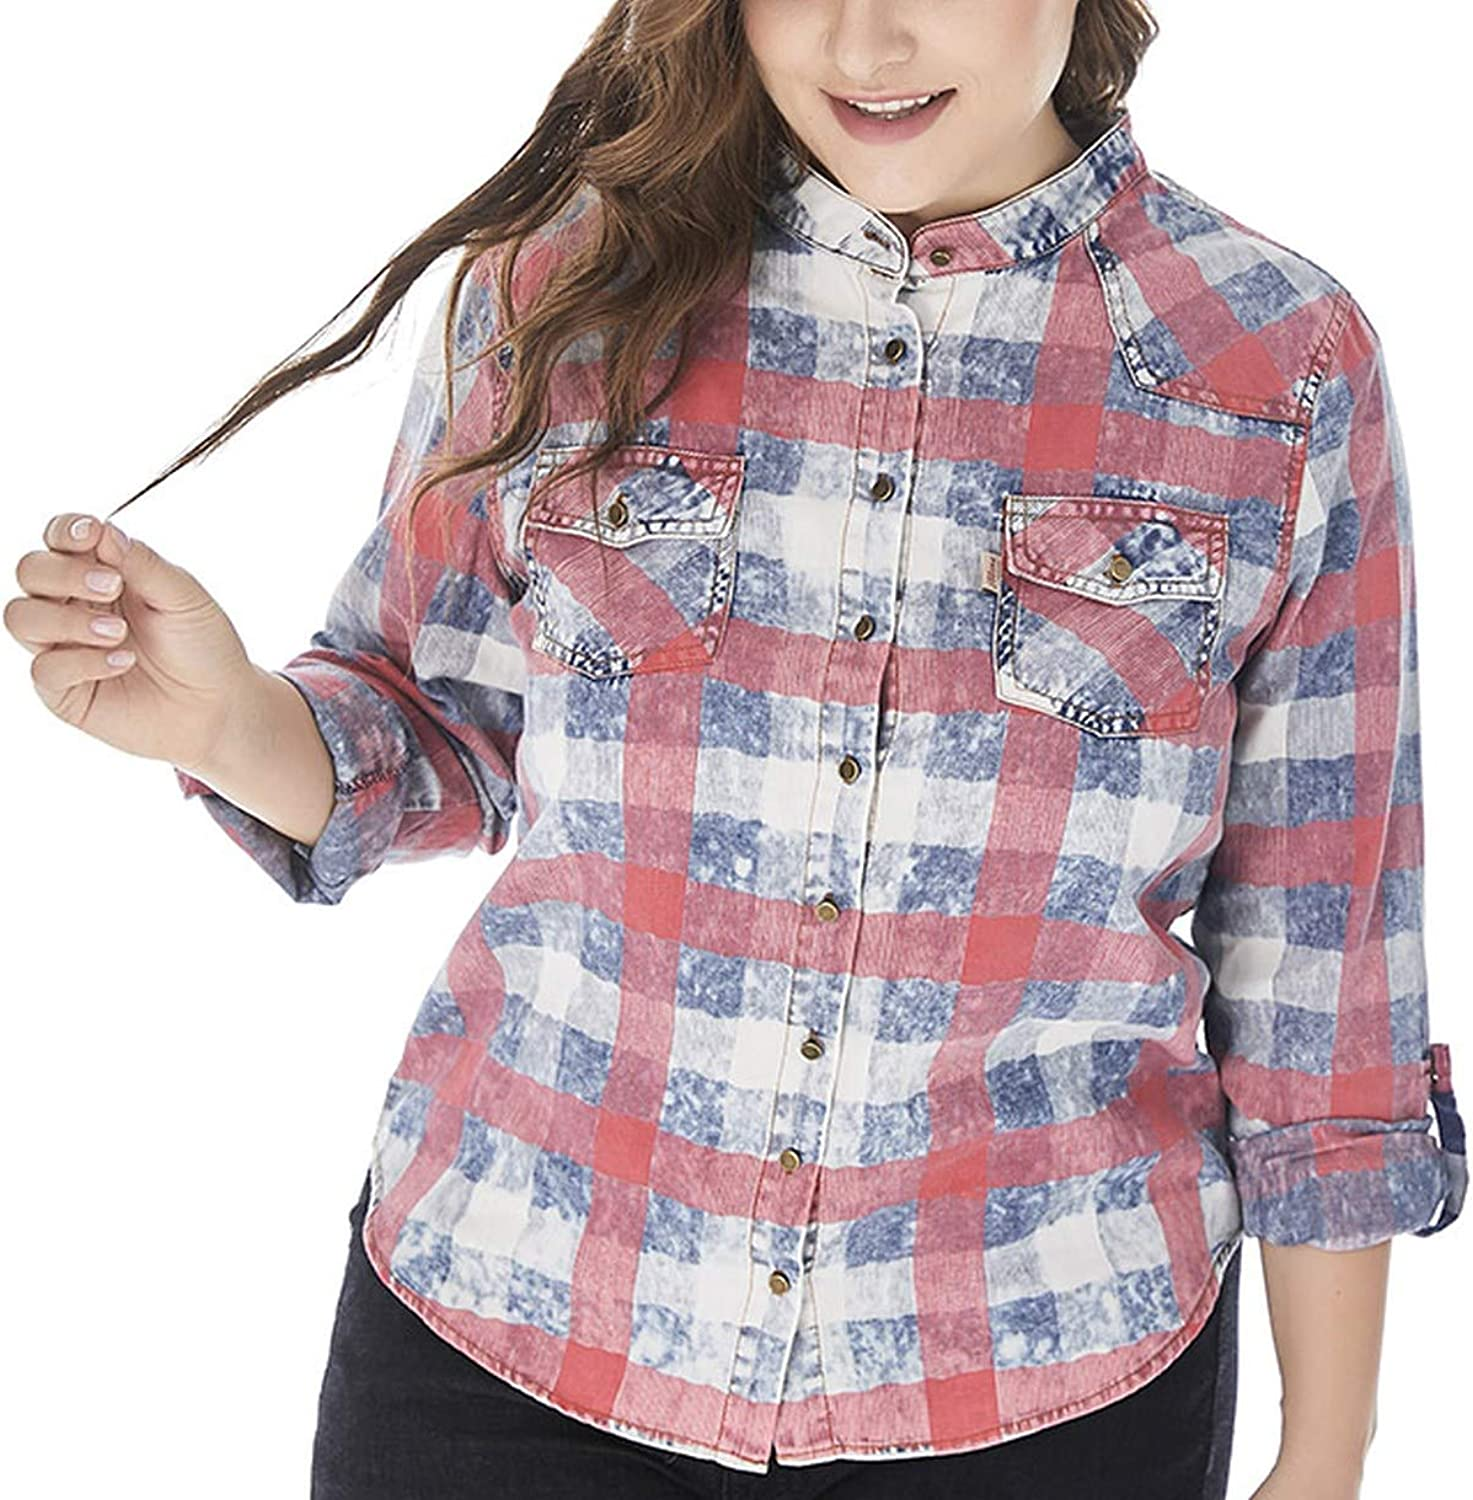 Rather be Womens Plus Size Denim Plaid Long Sleeve Tops and Blouses Women Fashion Party Streetwear Ladies top tee